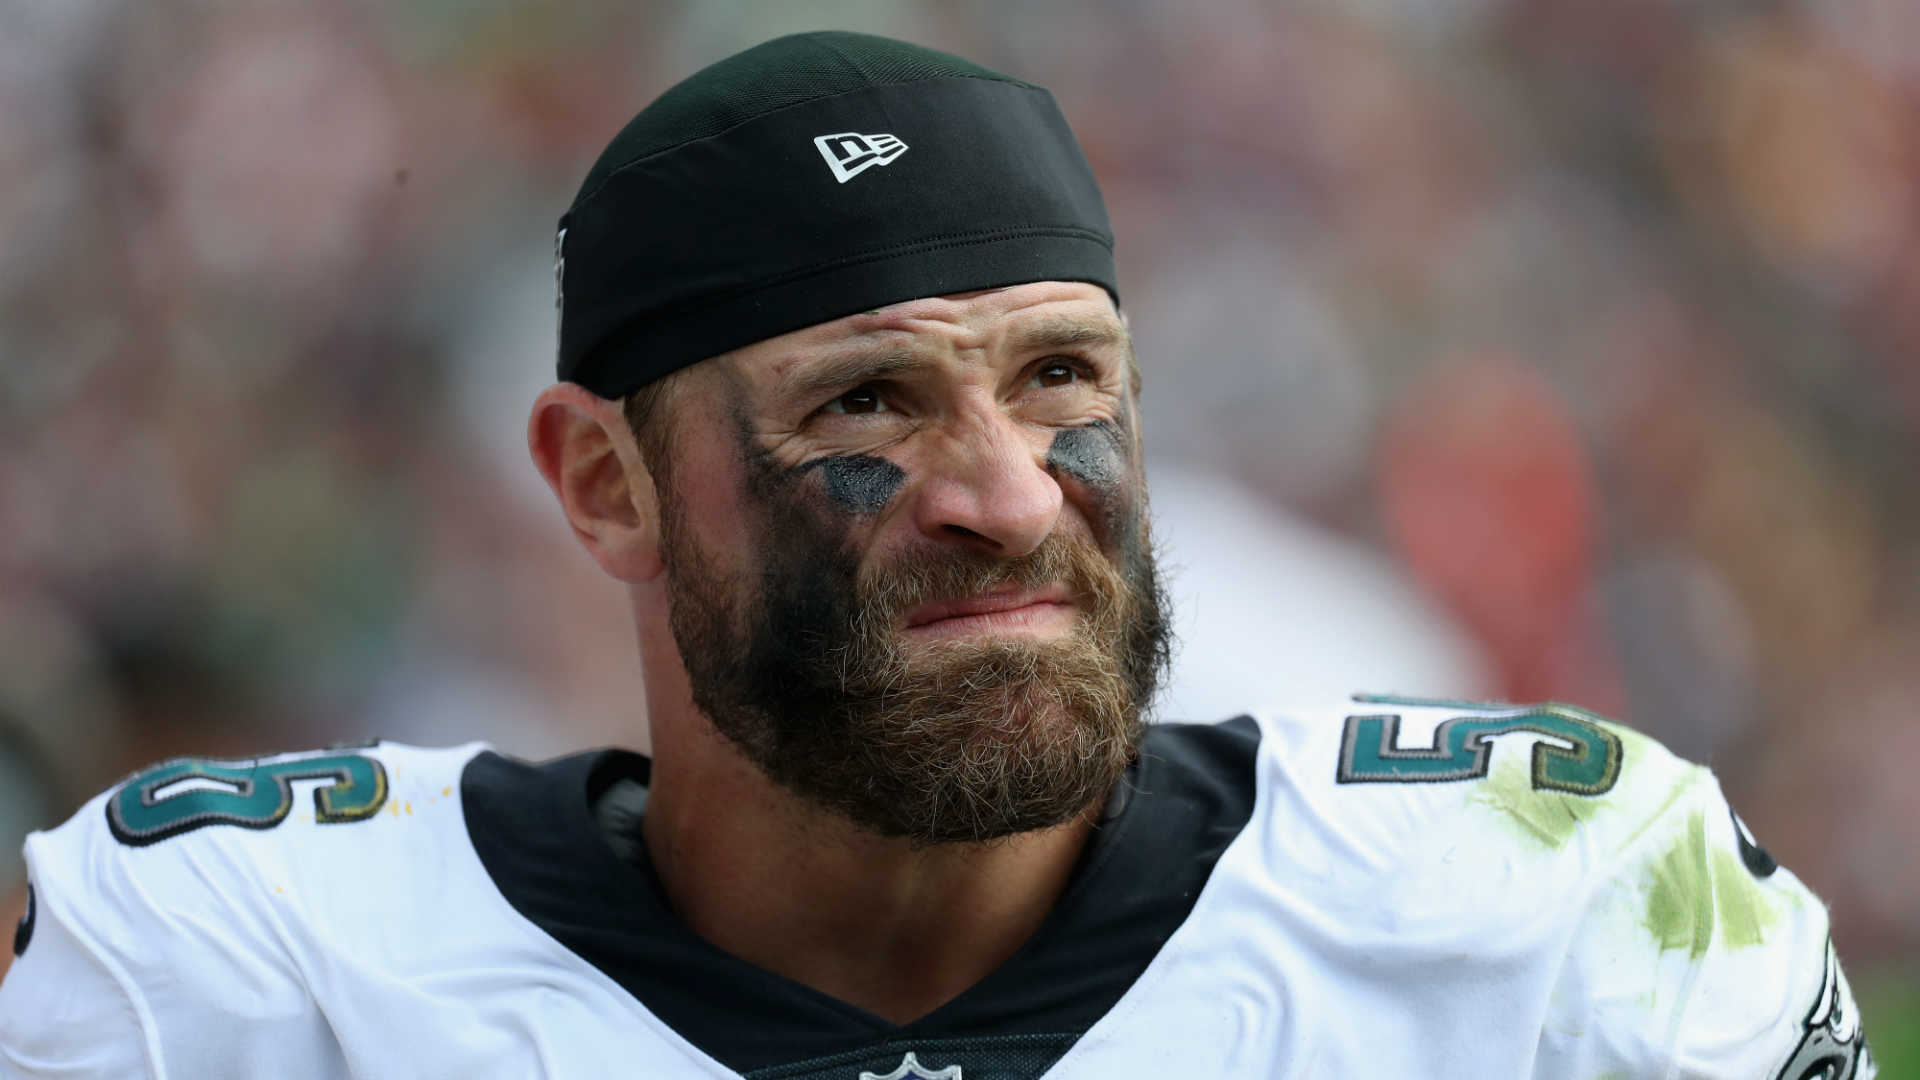 Philadelphia Eagles' Chris Long Hailed for Donating Entire Season's Paychecks to Charity